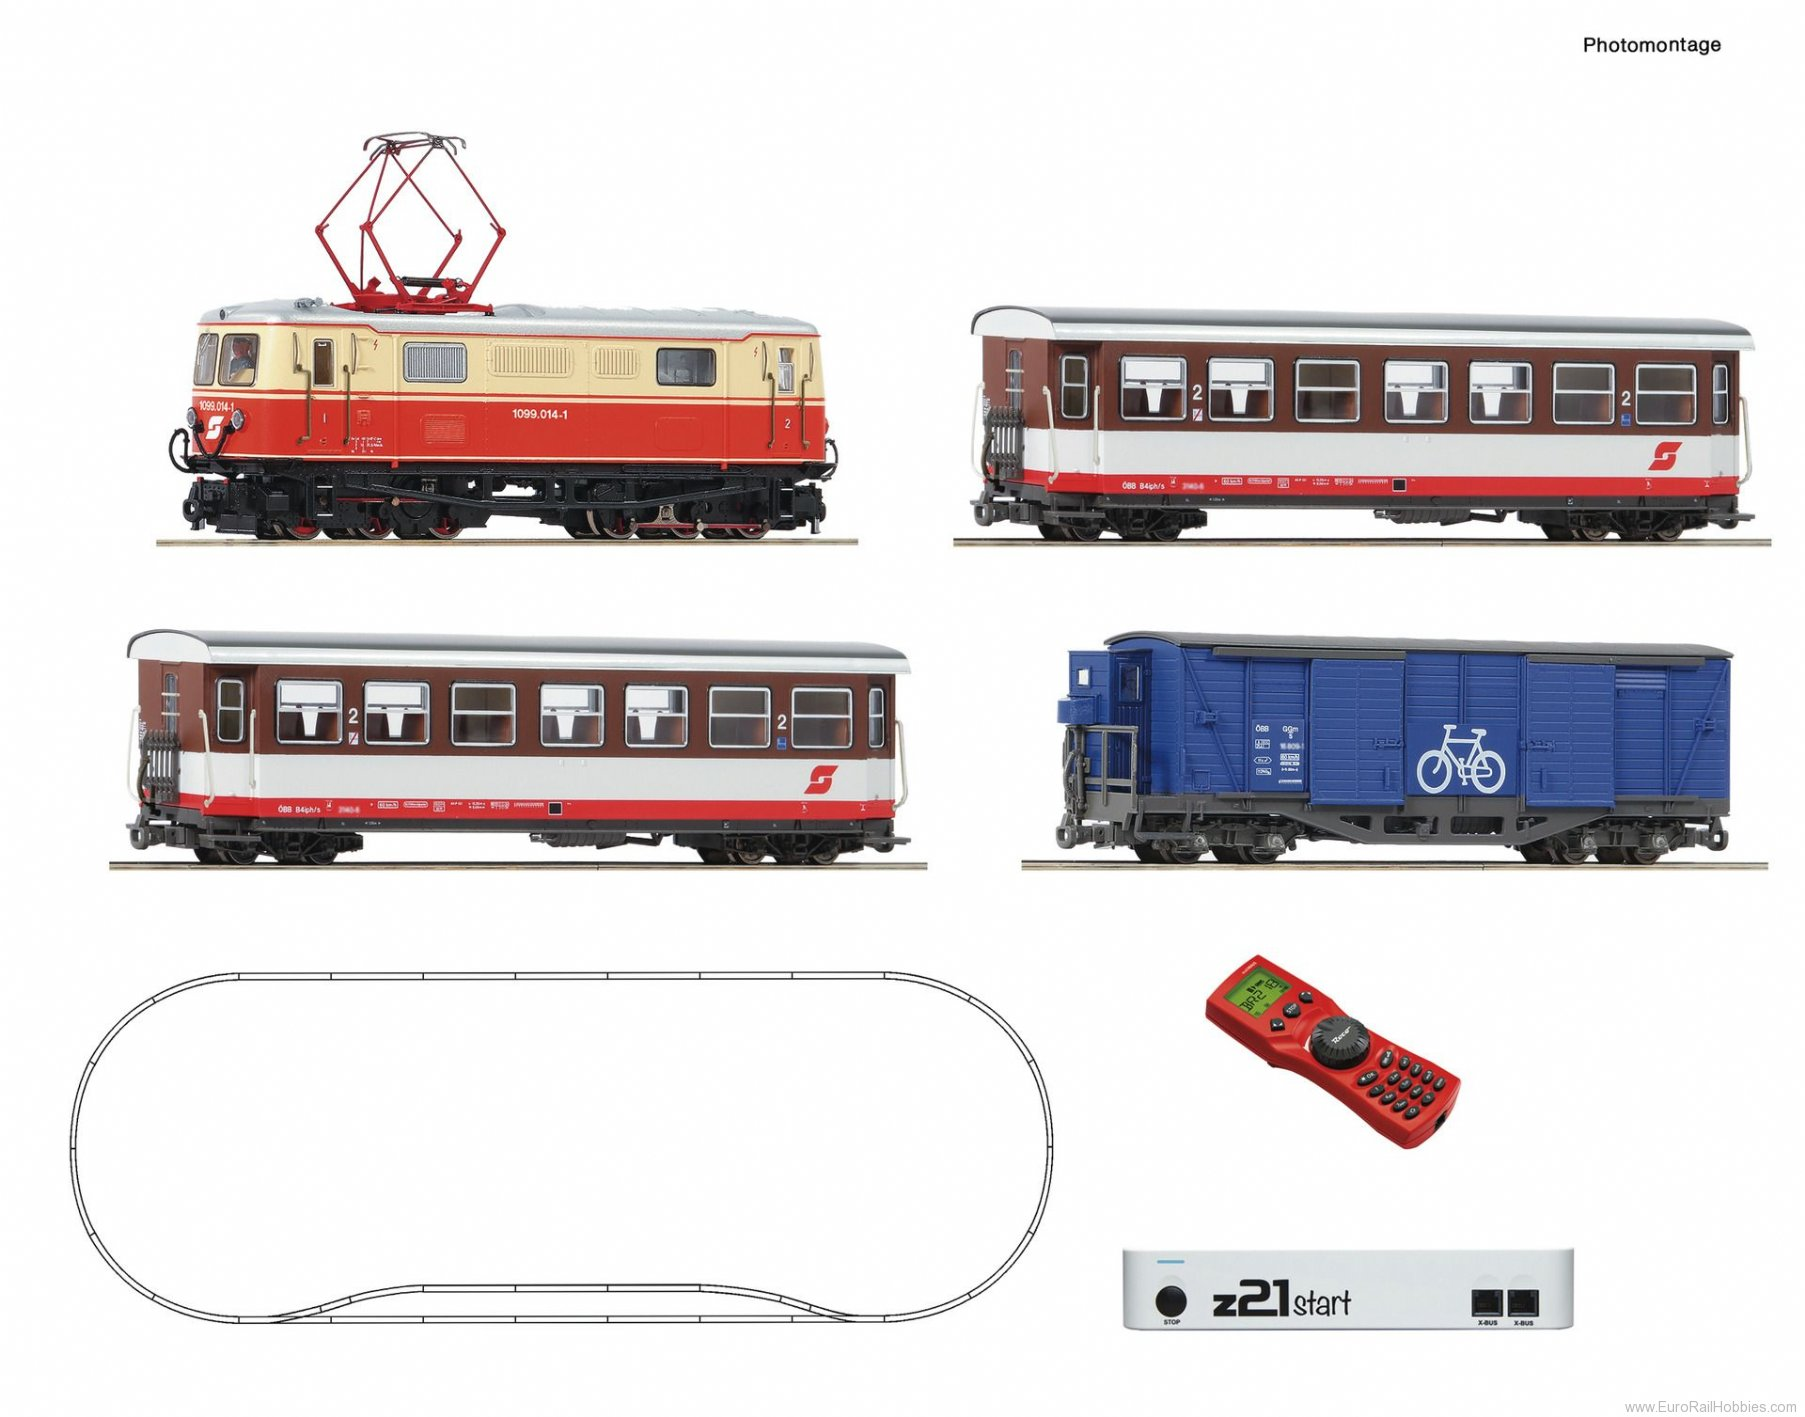 Roco 31033 z21®start Digitalset: Electric locomotive